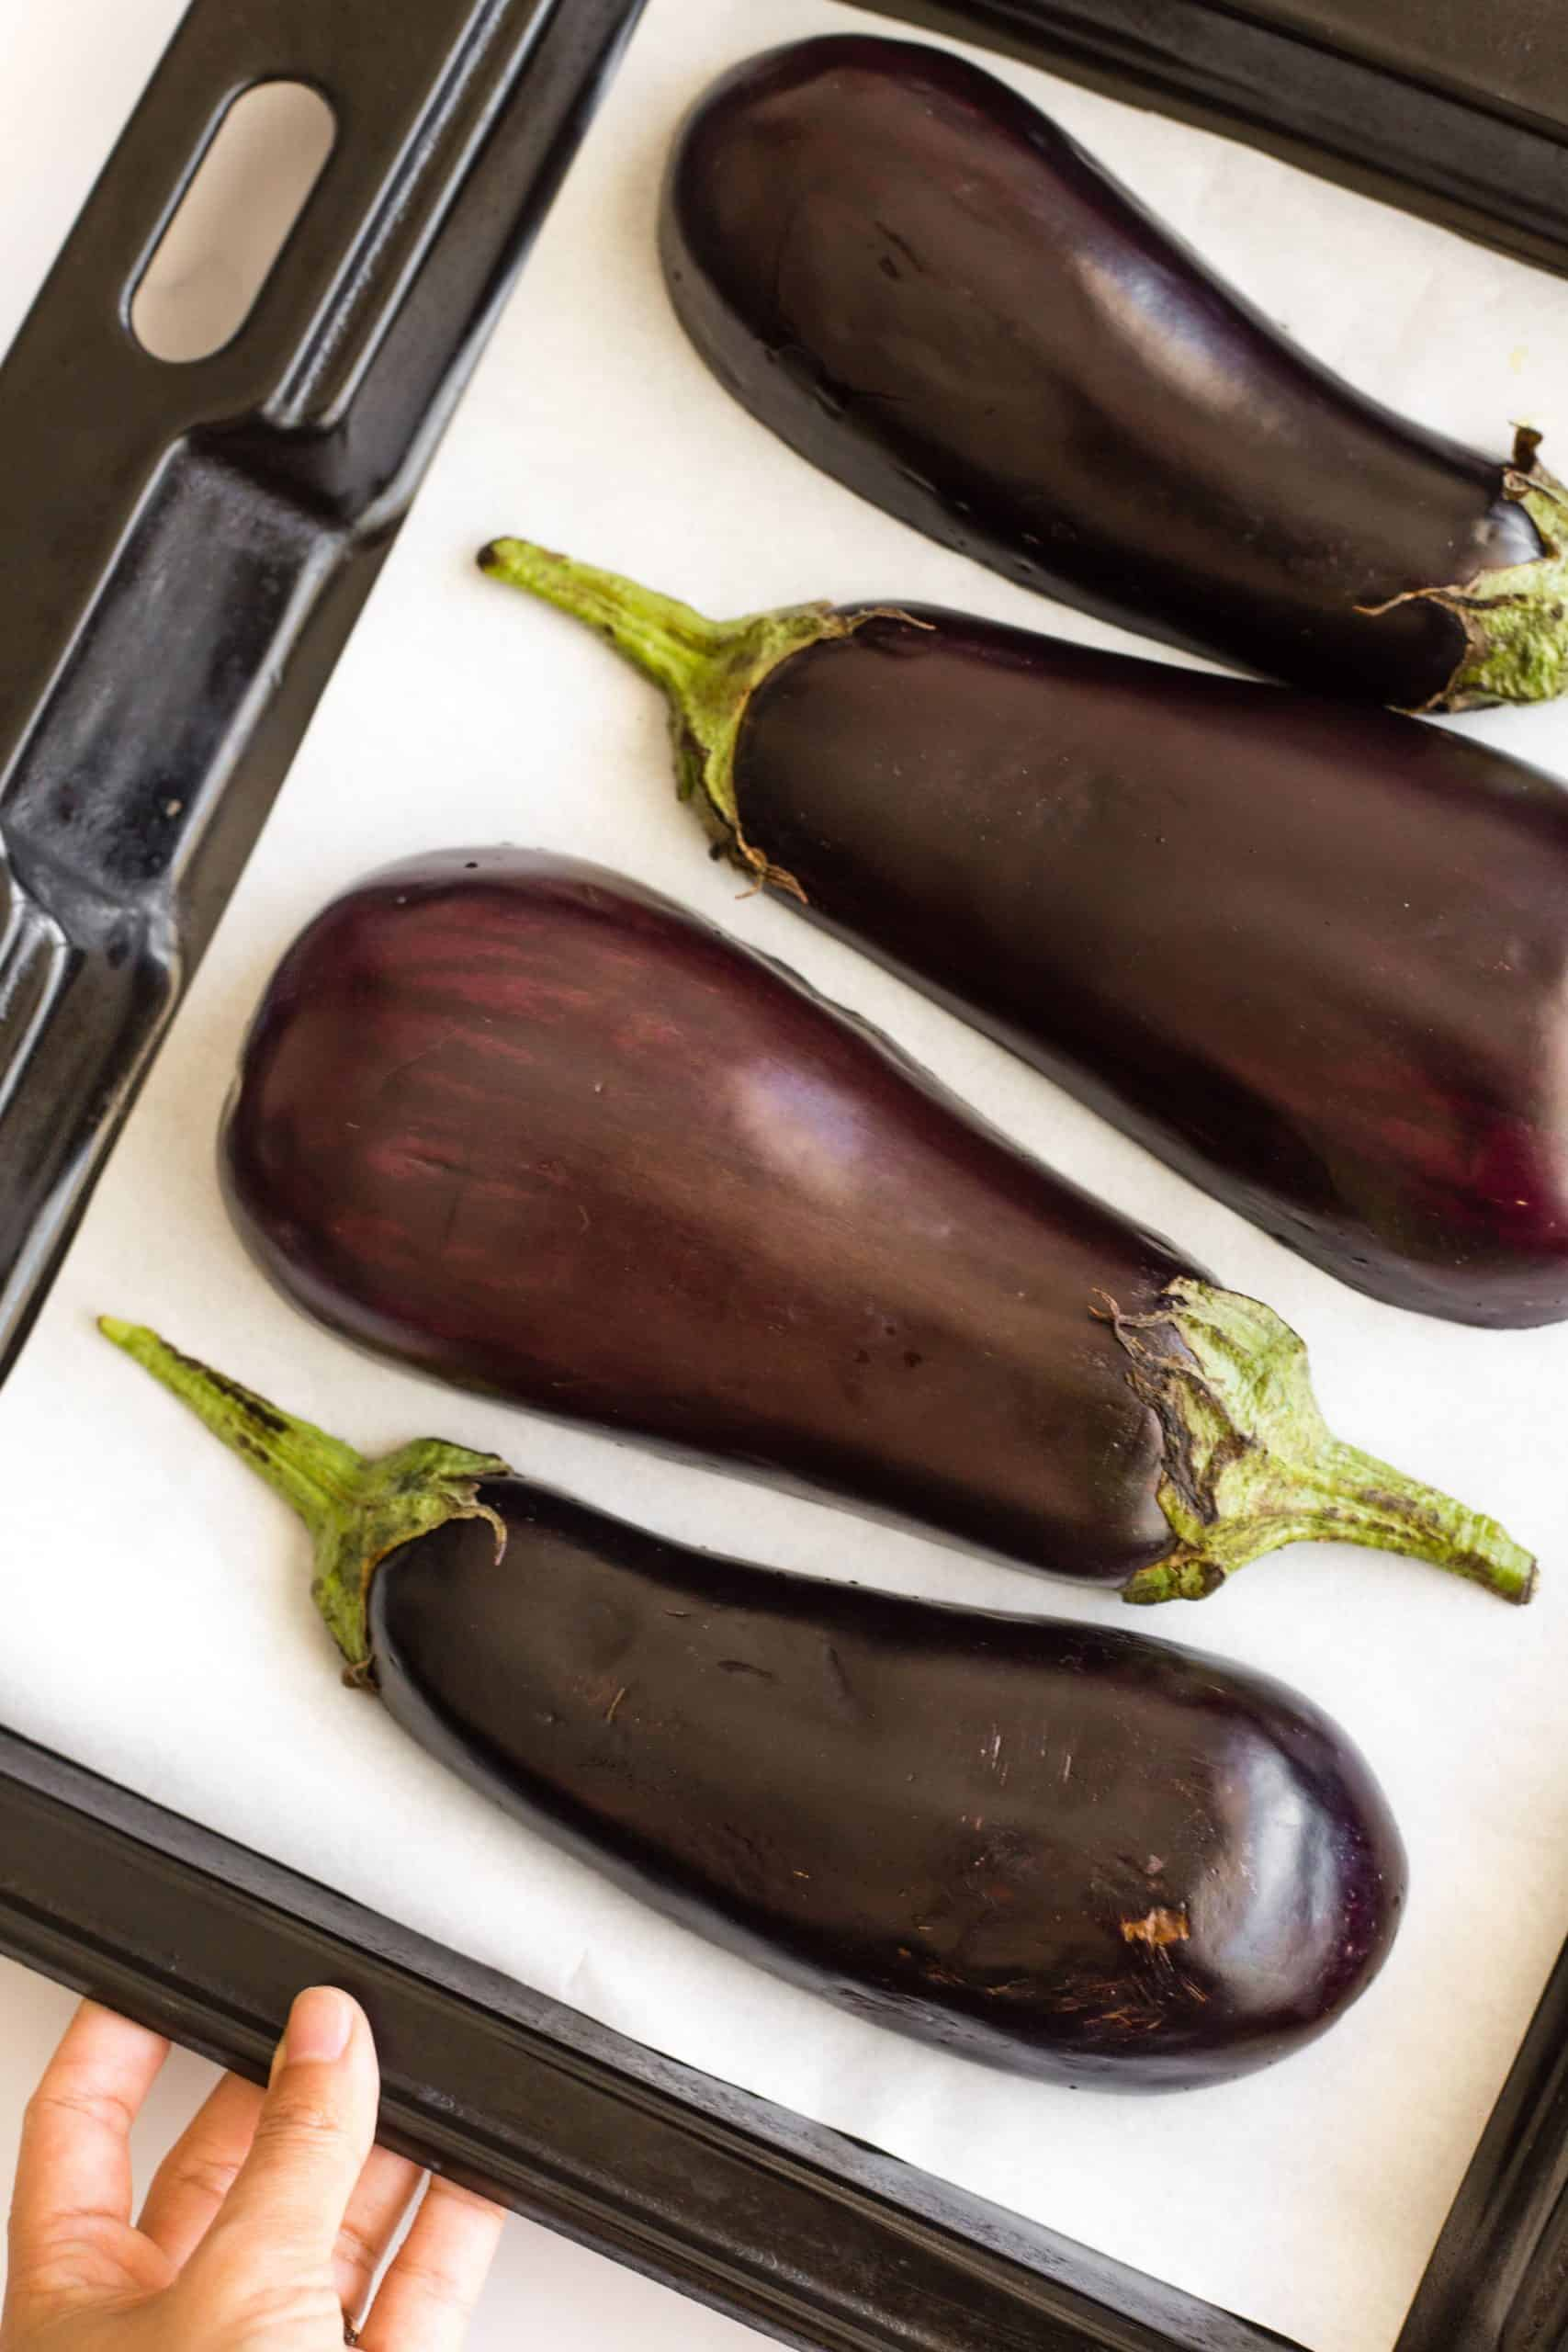 Eggplant halves on a parchment-lined baking sheet.